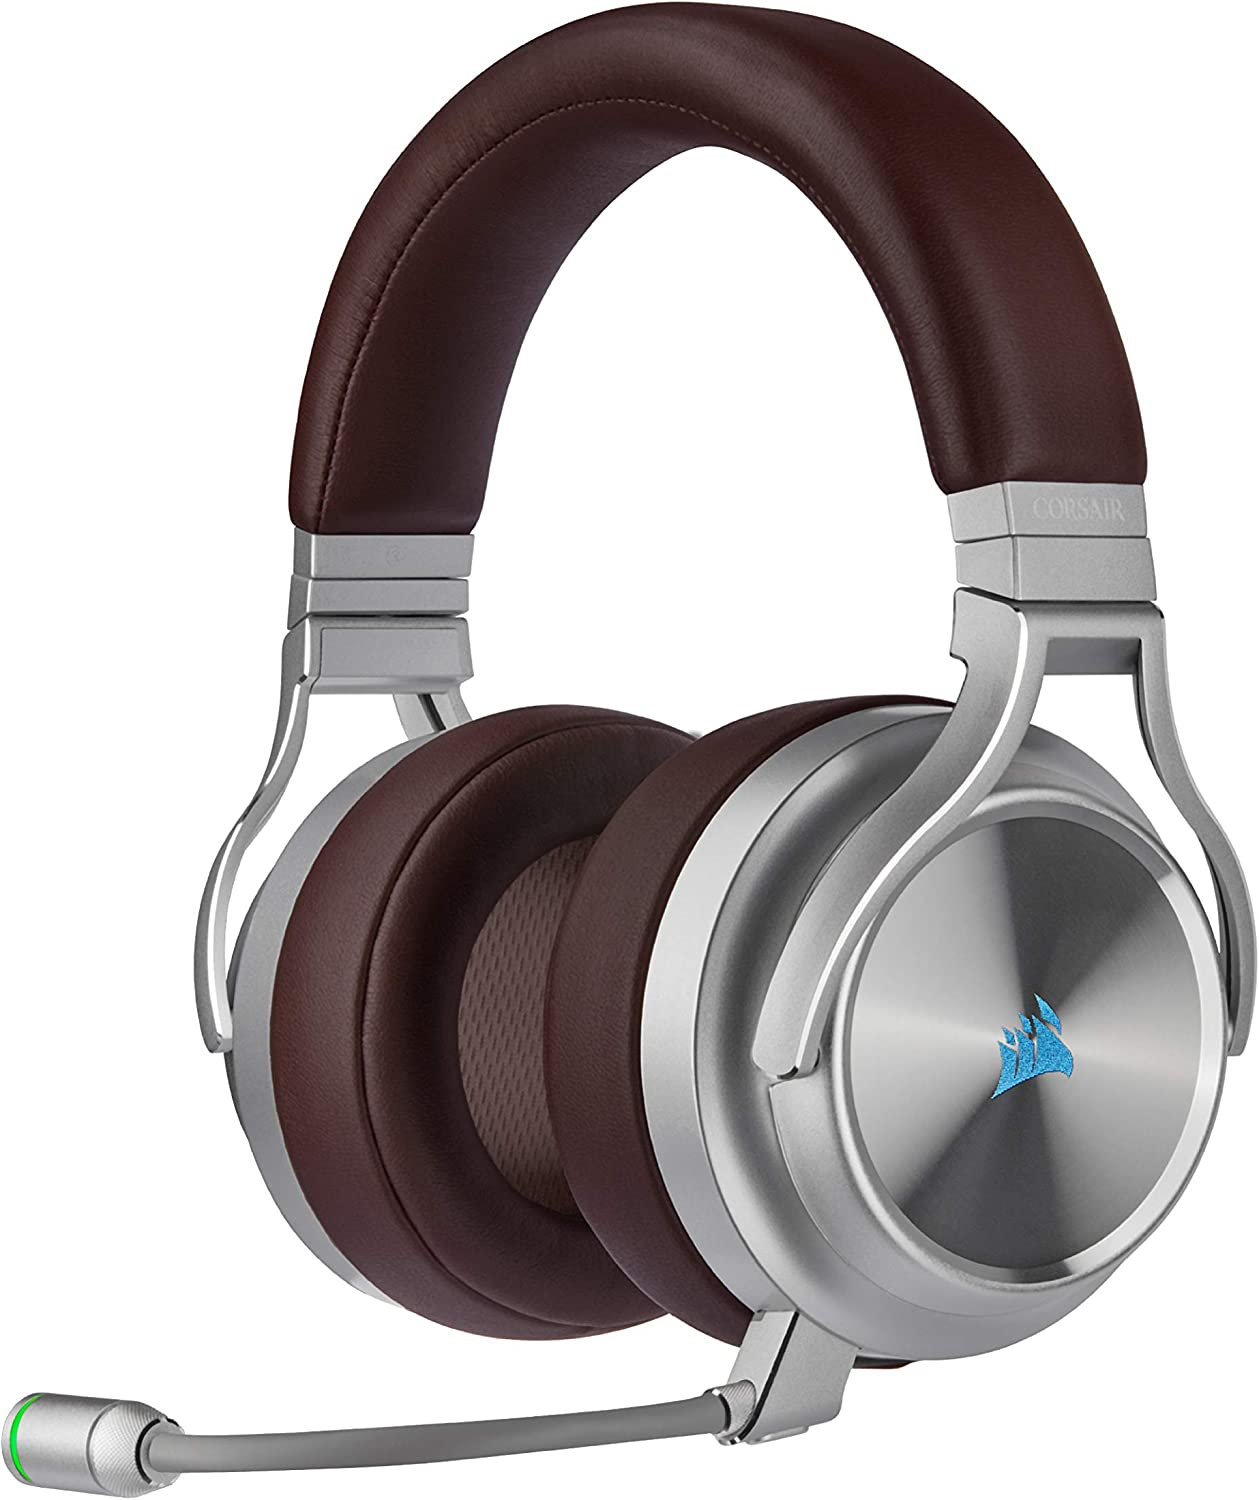 Corsair Virtuoso RGB Wireless SE Gaming Headset - High-Fidelity 7.1 Surround Sound W/Broadcast Quality Microphone, Memory Foam Earcups, 20 Hour Battery Life, Works w/PC, PS5, PS4 - Espresso: Computers & Accessories